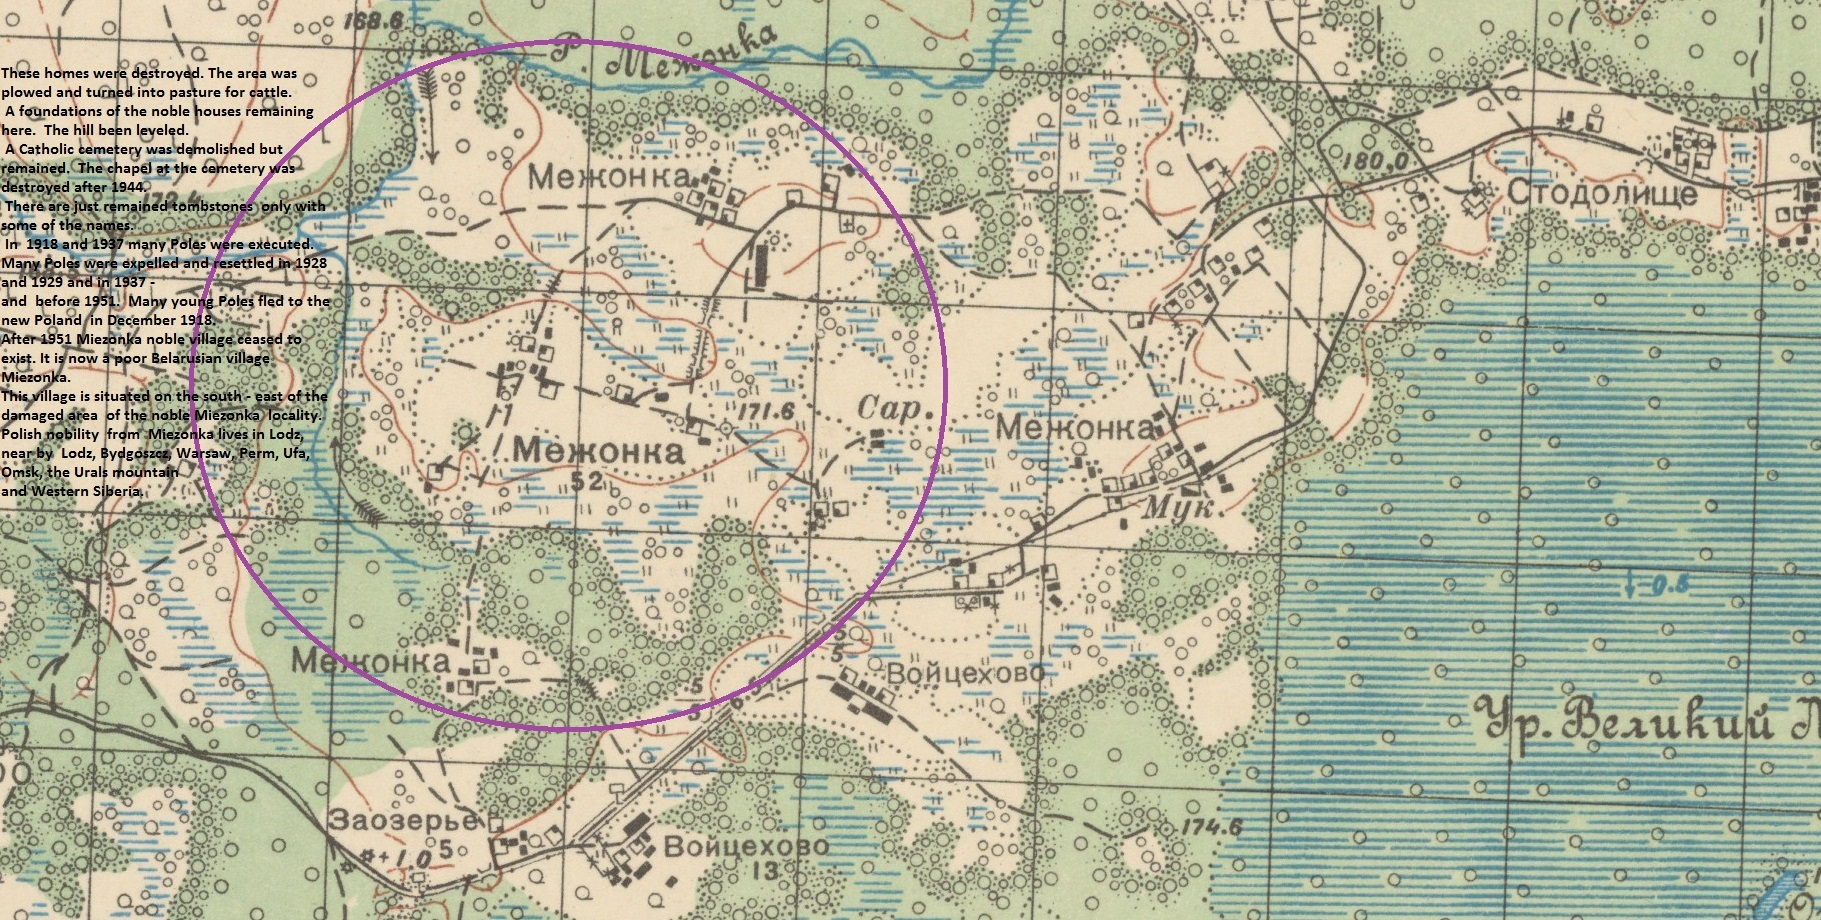 St Petersburg and The Duflon and Konstantynowicz Company 1892 - 1918